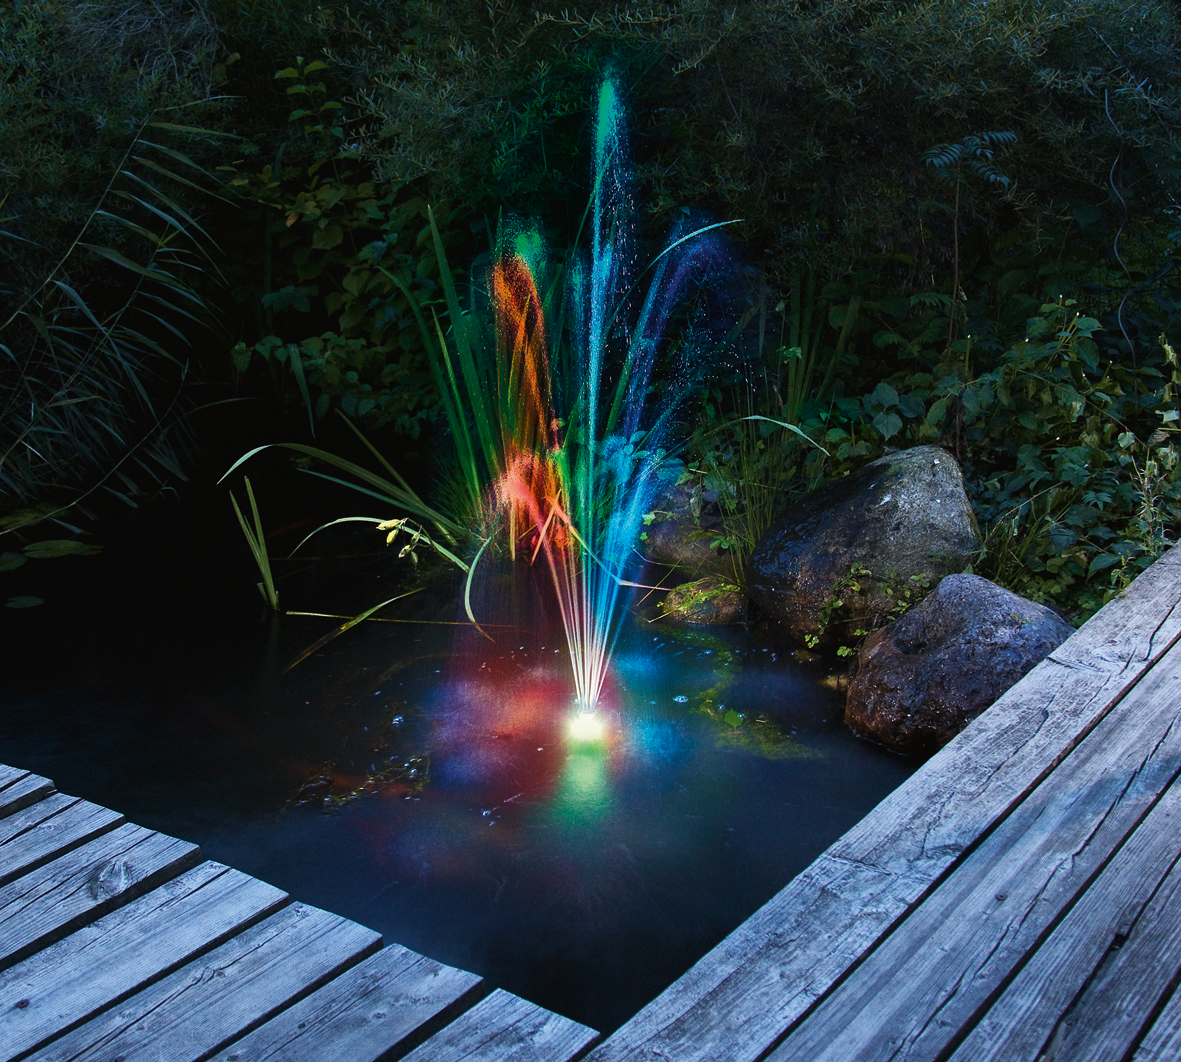 Teichpumpe Led Beleuchtung | Led Lichtring Bunt Rgb Solar Teichpumpen Teich Beleuchtung Esotec